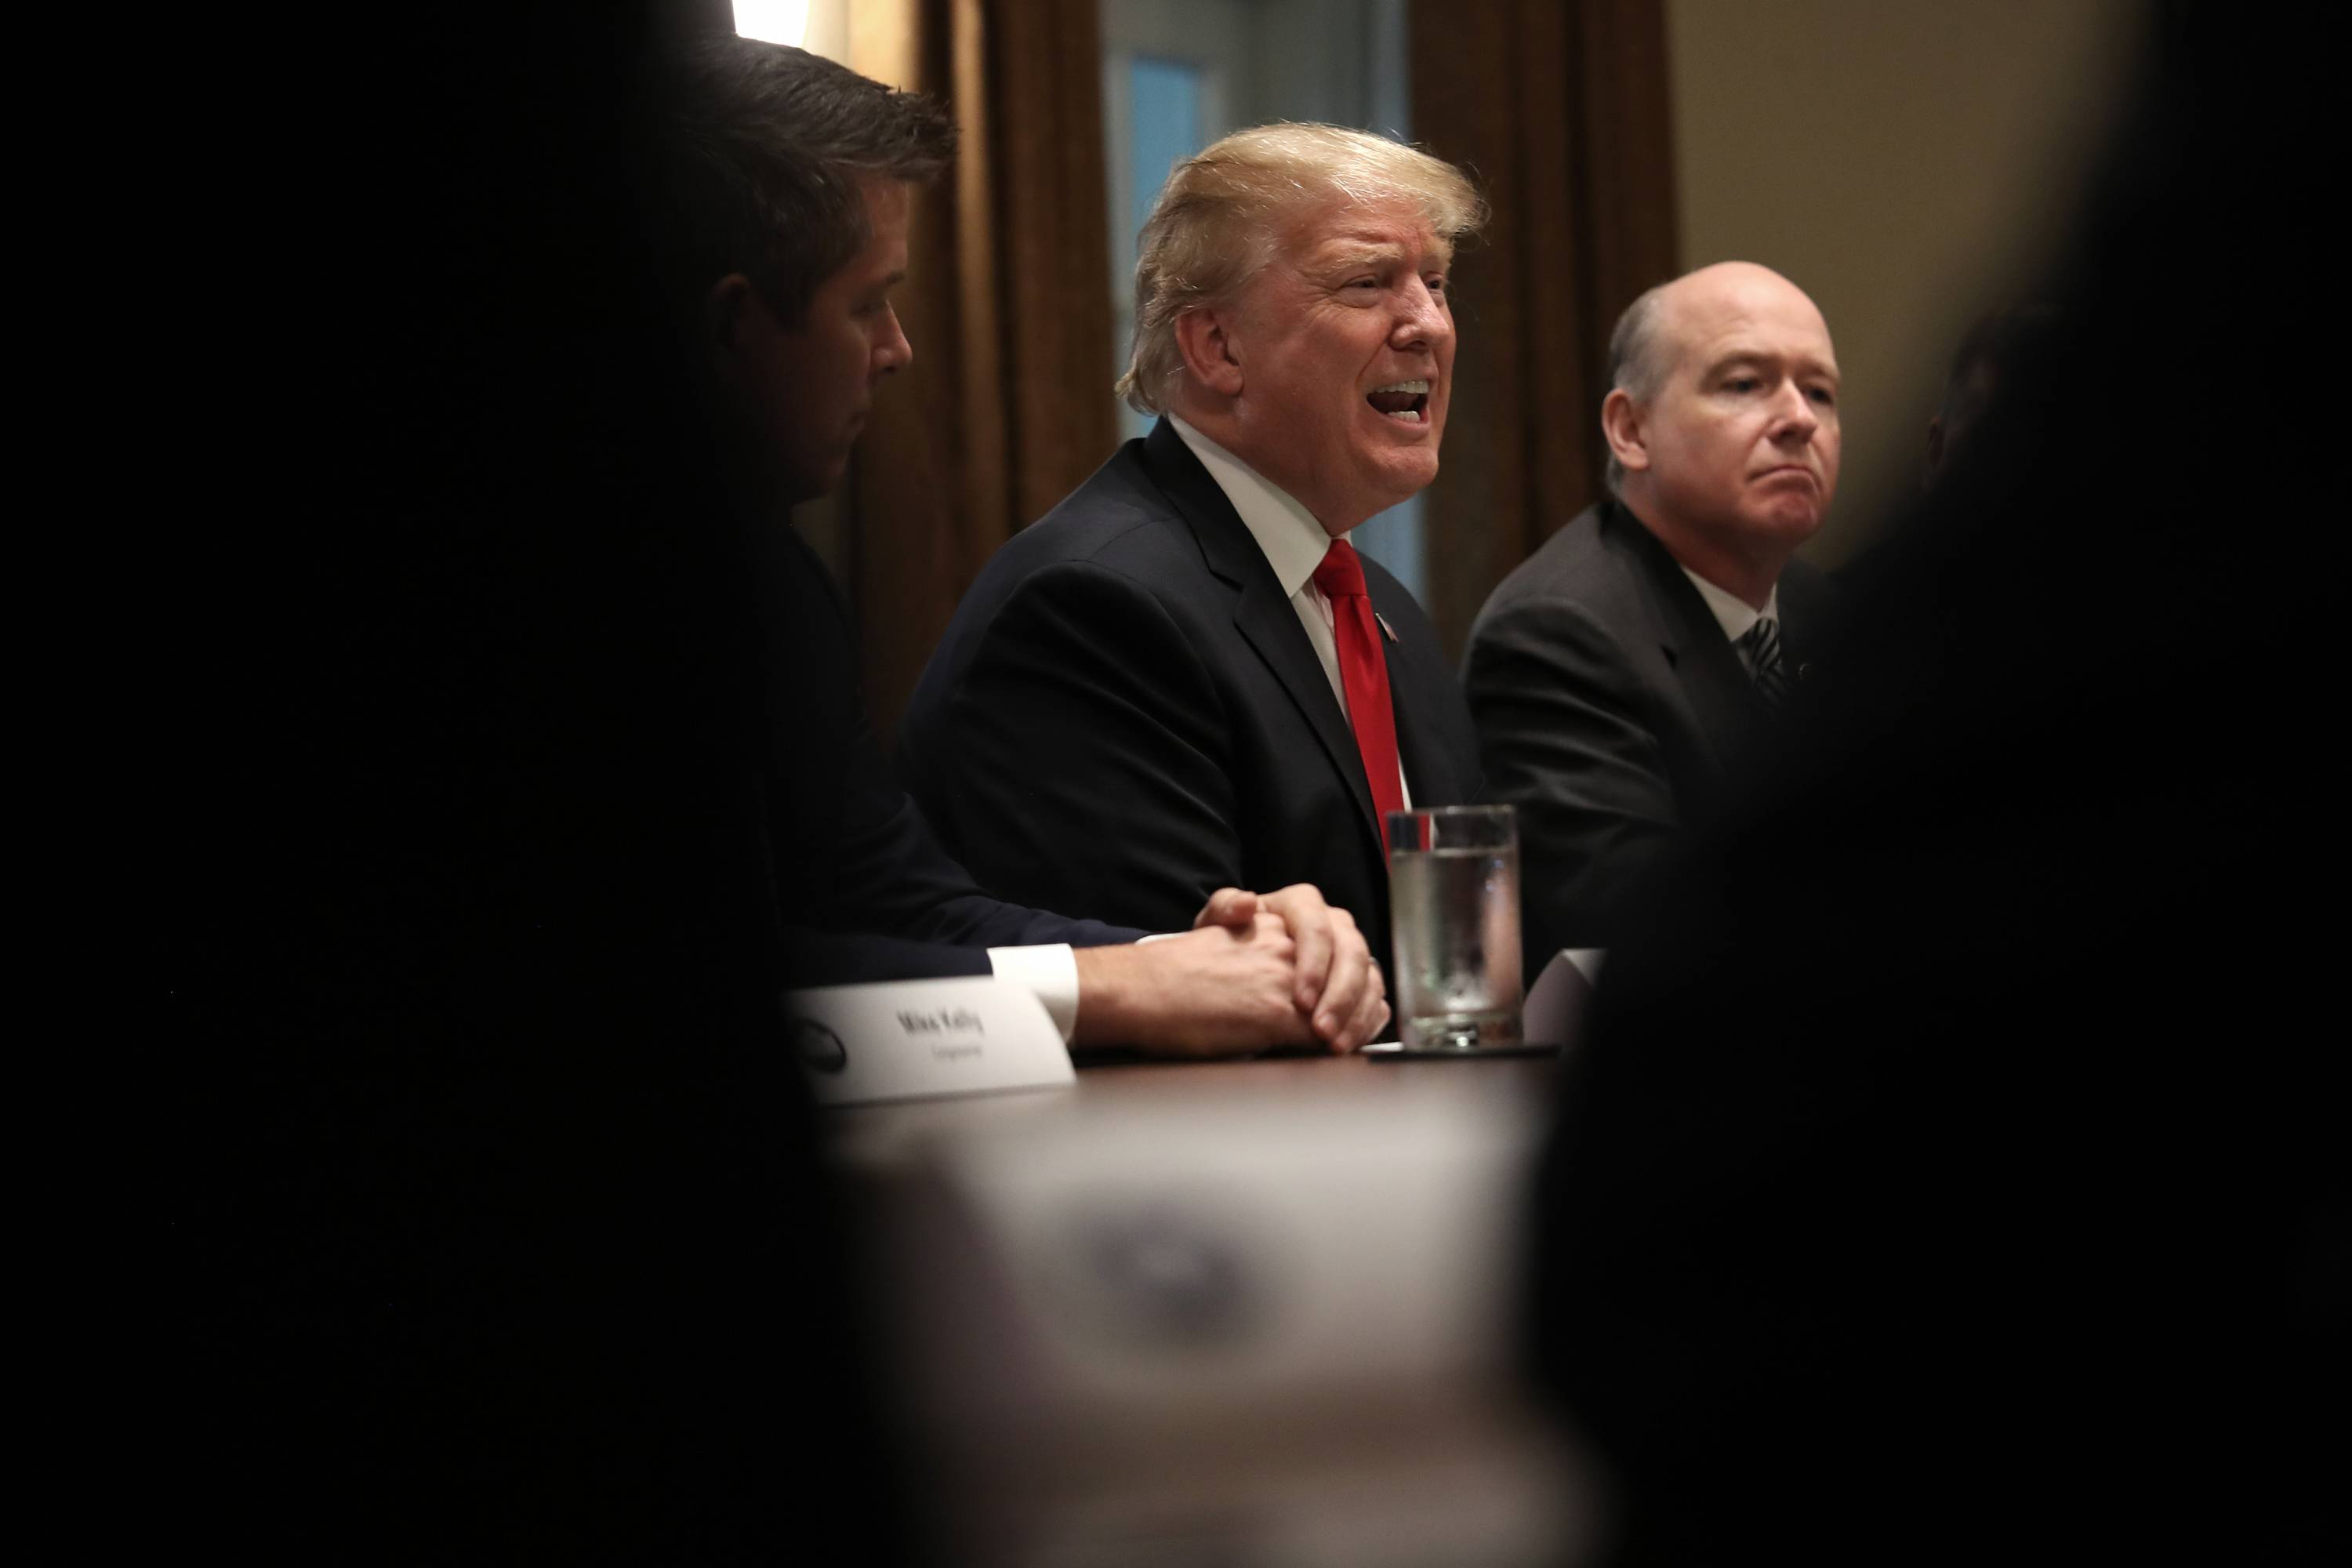 President Trump Discusses Partial Government Shutdown In Cabinet Room